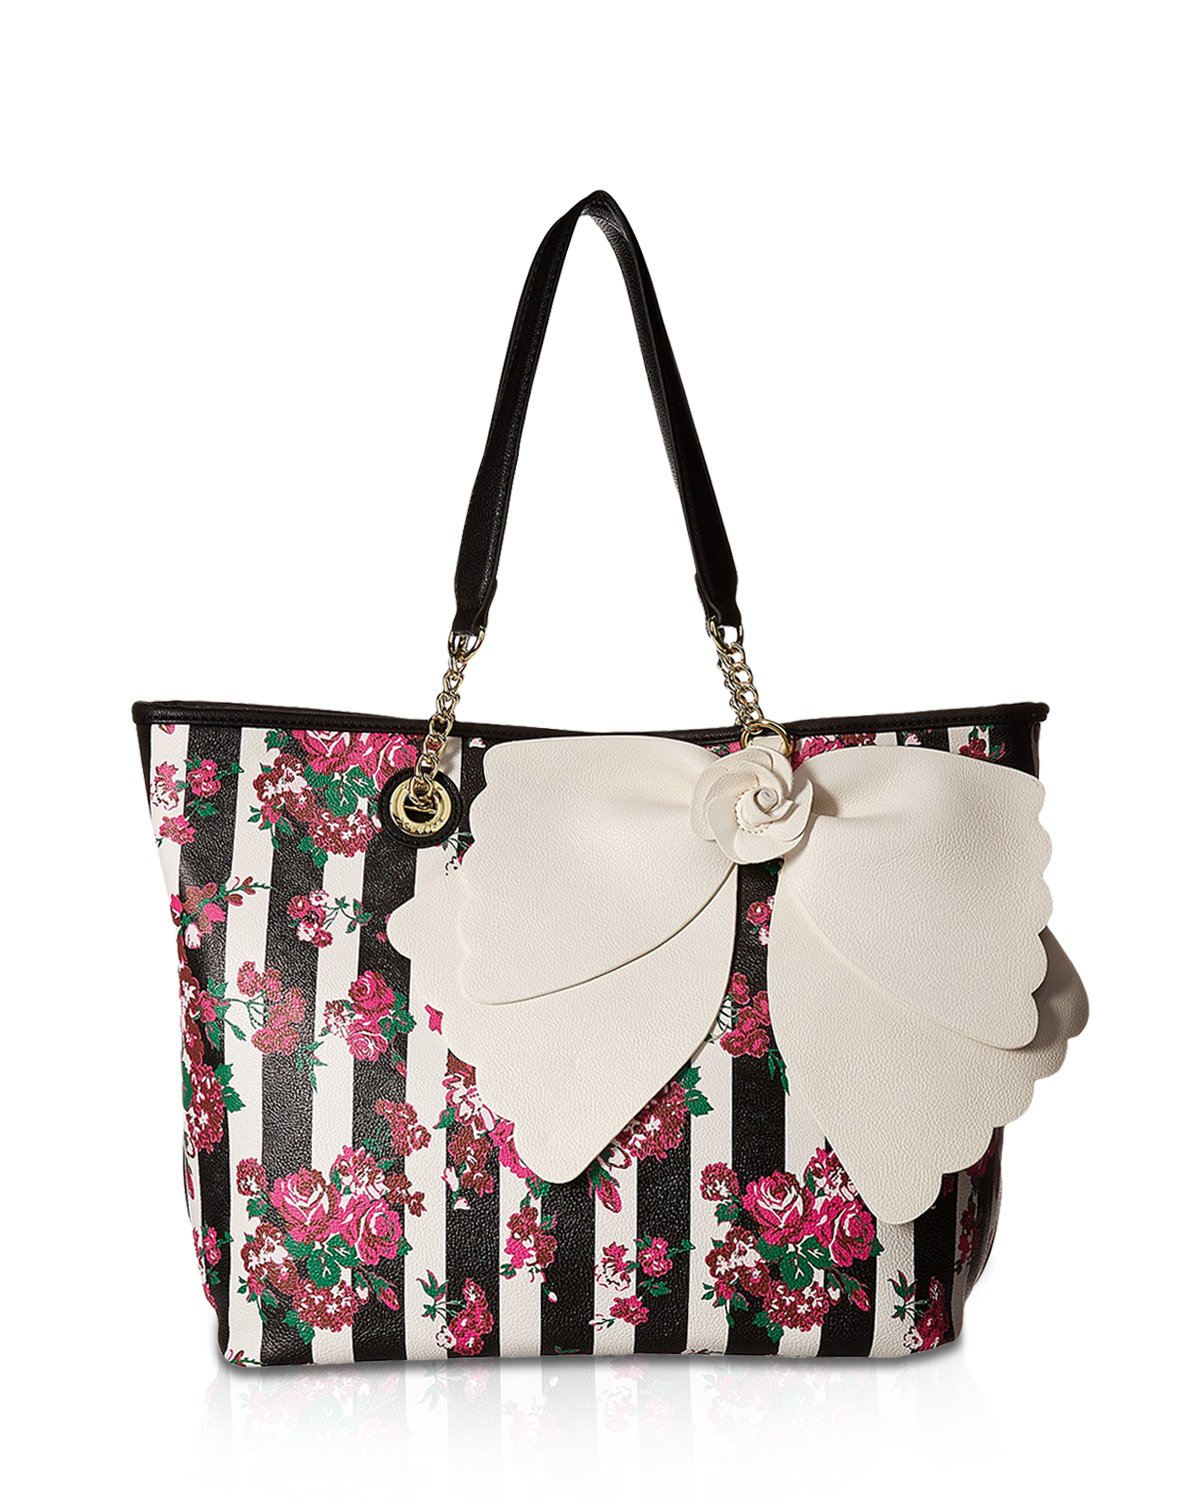 Betsey Johnson Women's East/West Tote with Pouch Floral Handbag